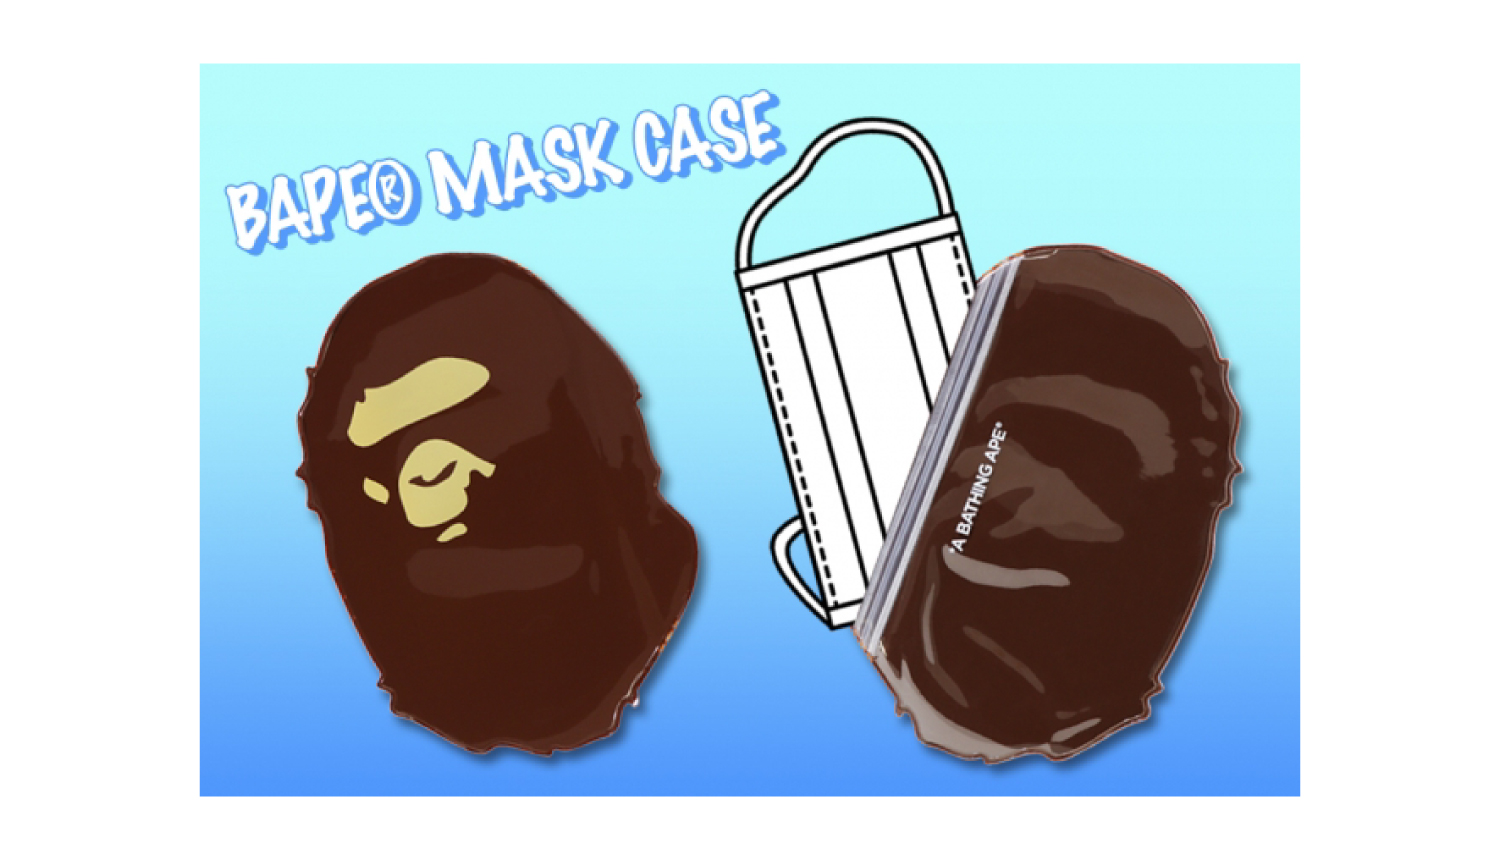 BAPE-MASK-CASE